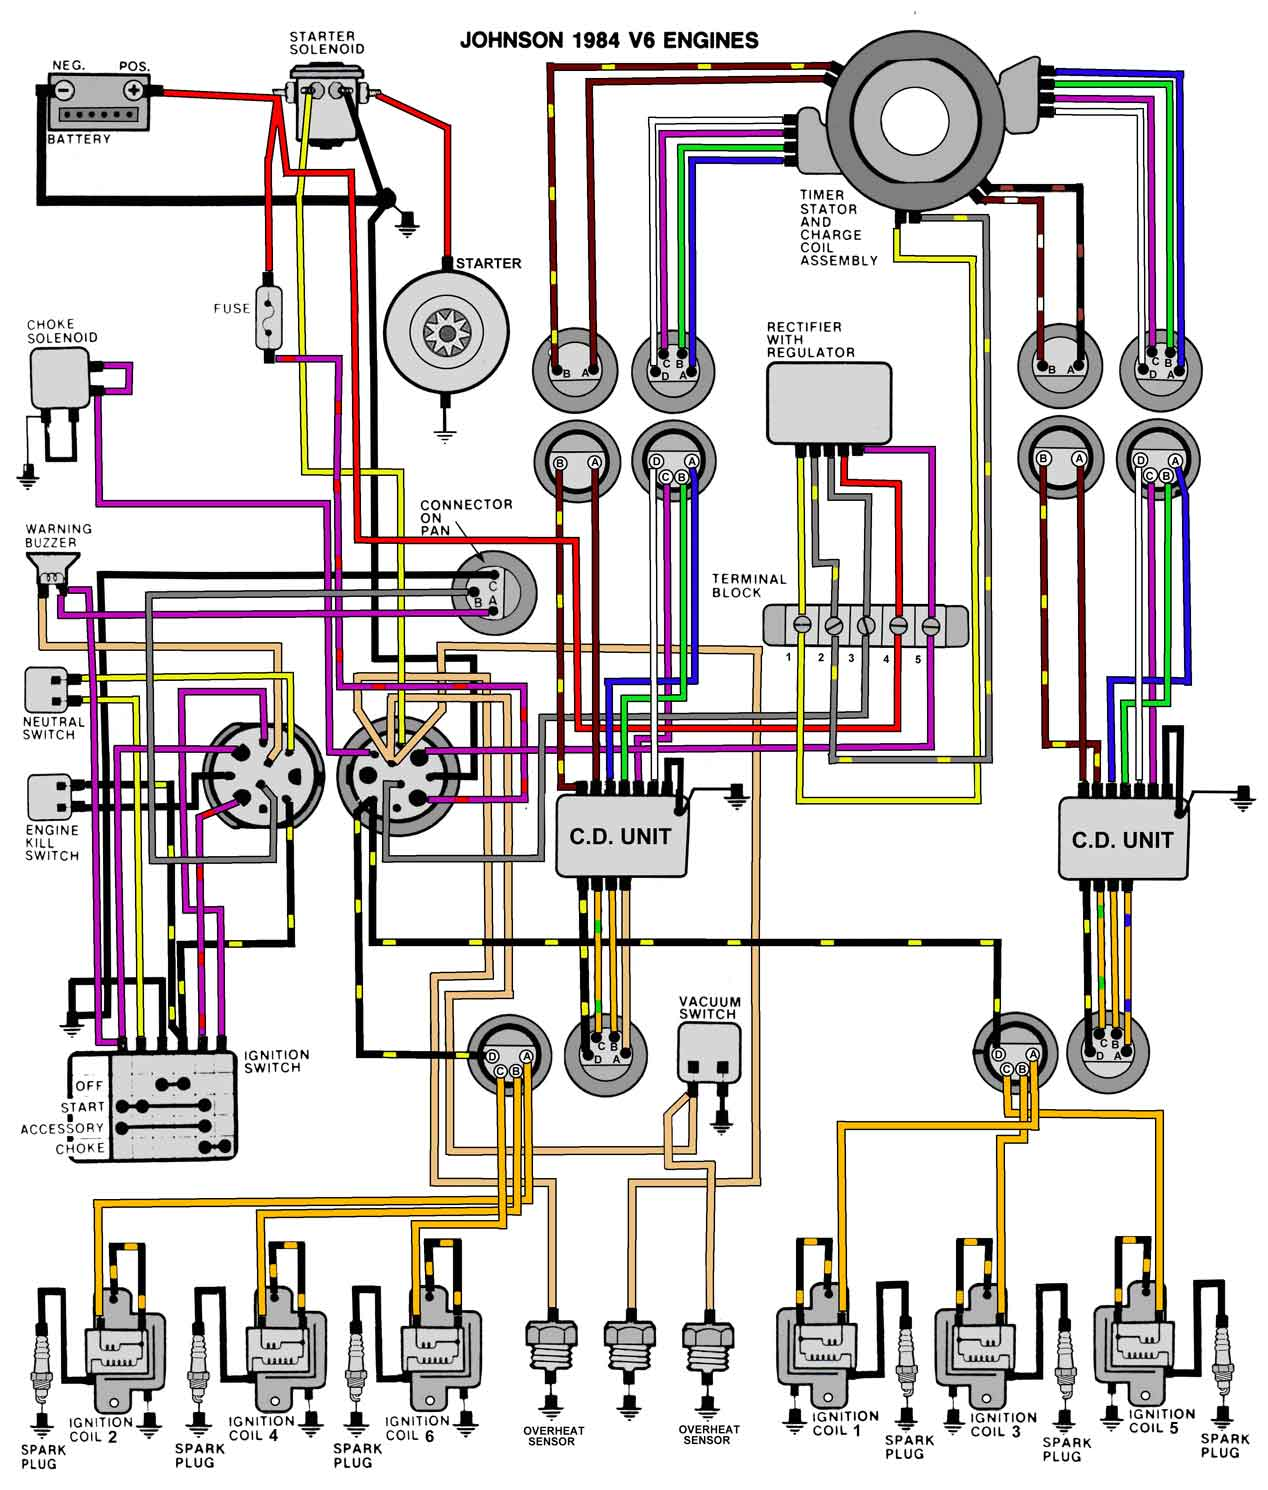 84_V6 mastertech marine evinrude johnson outboard wiring diagrams omc wiring harness diagram at virtualis.co